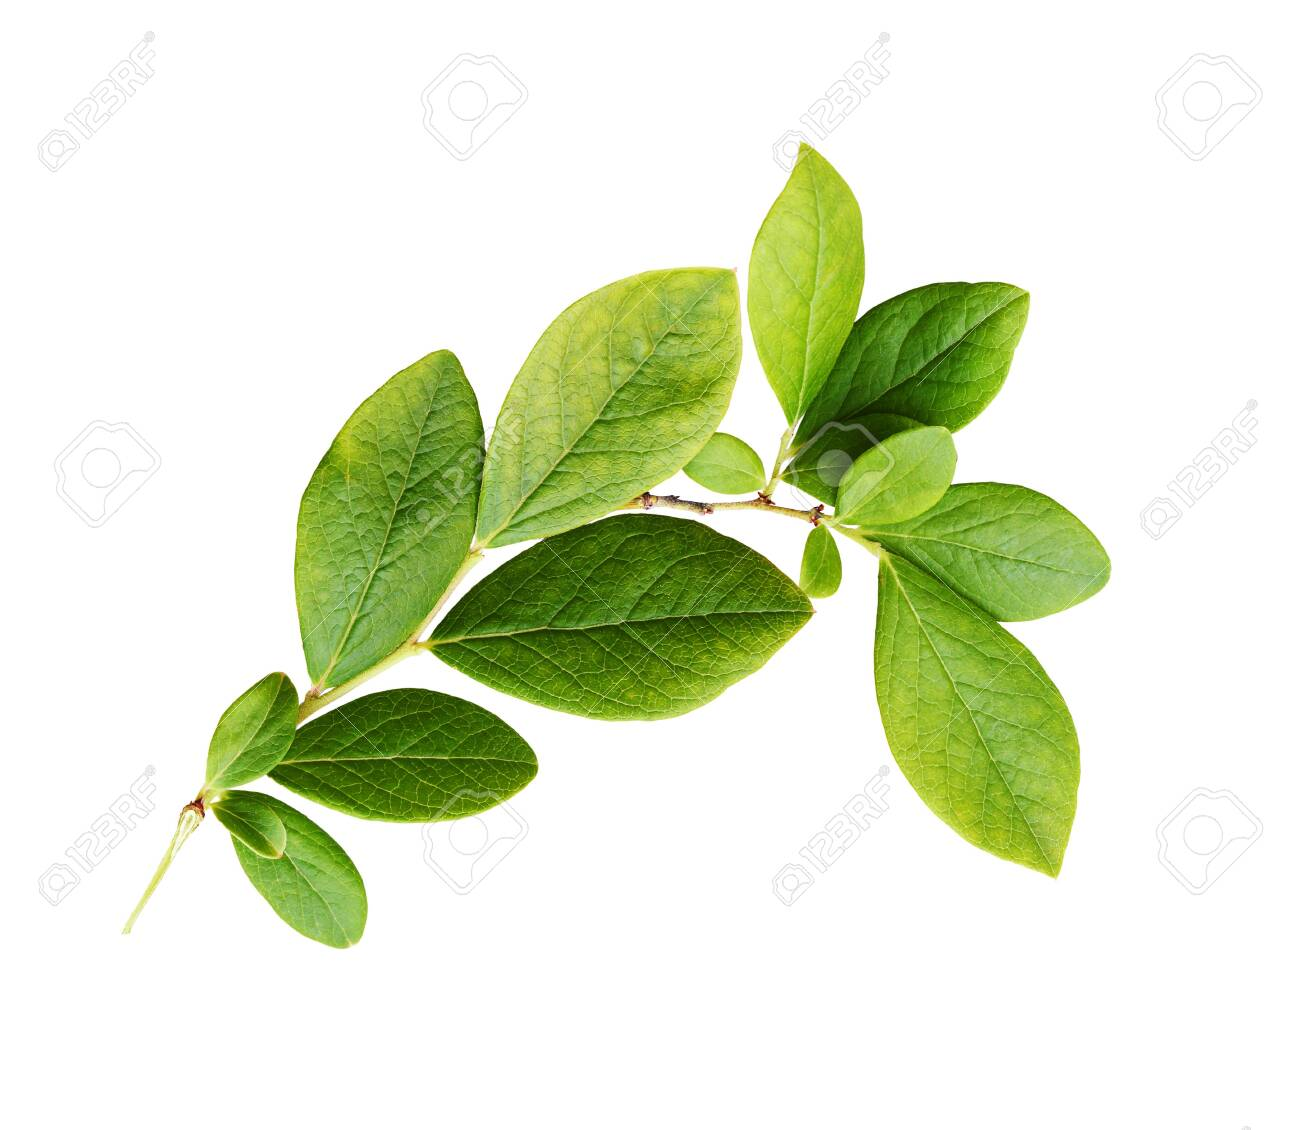 Green leaves of blueberry isolated on white - 141621699